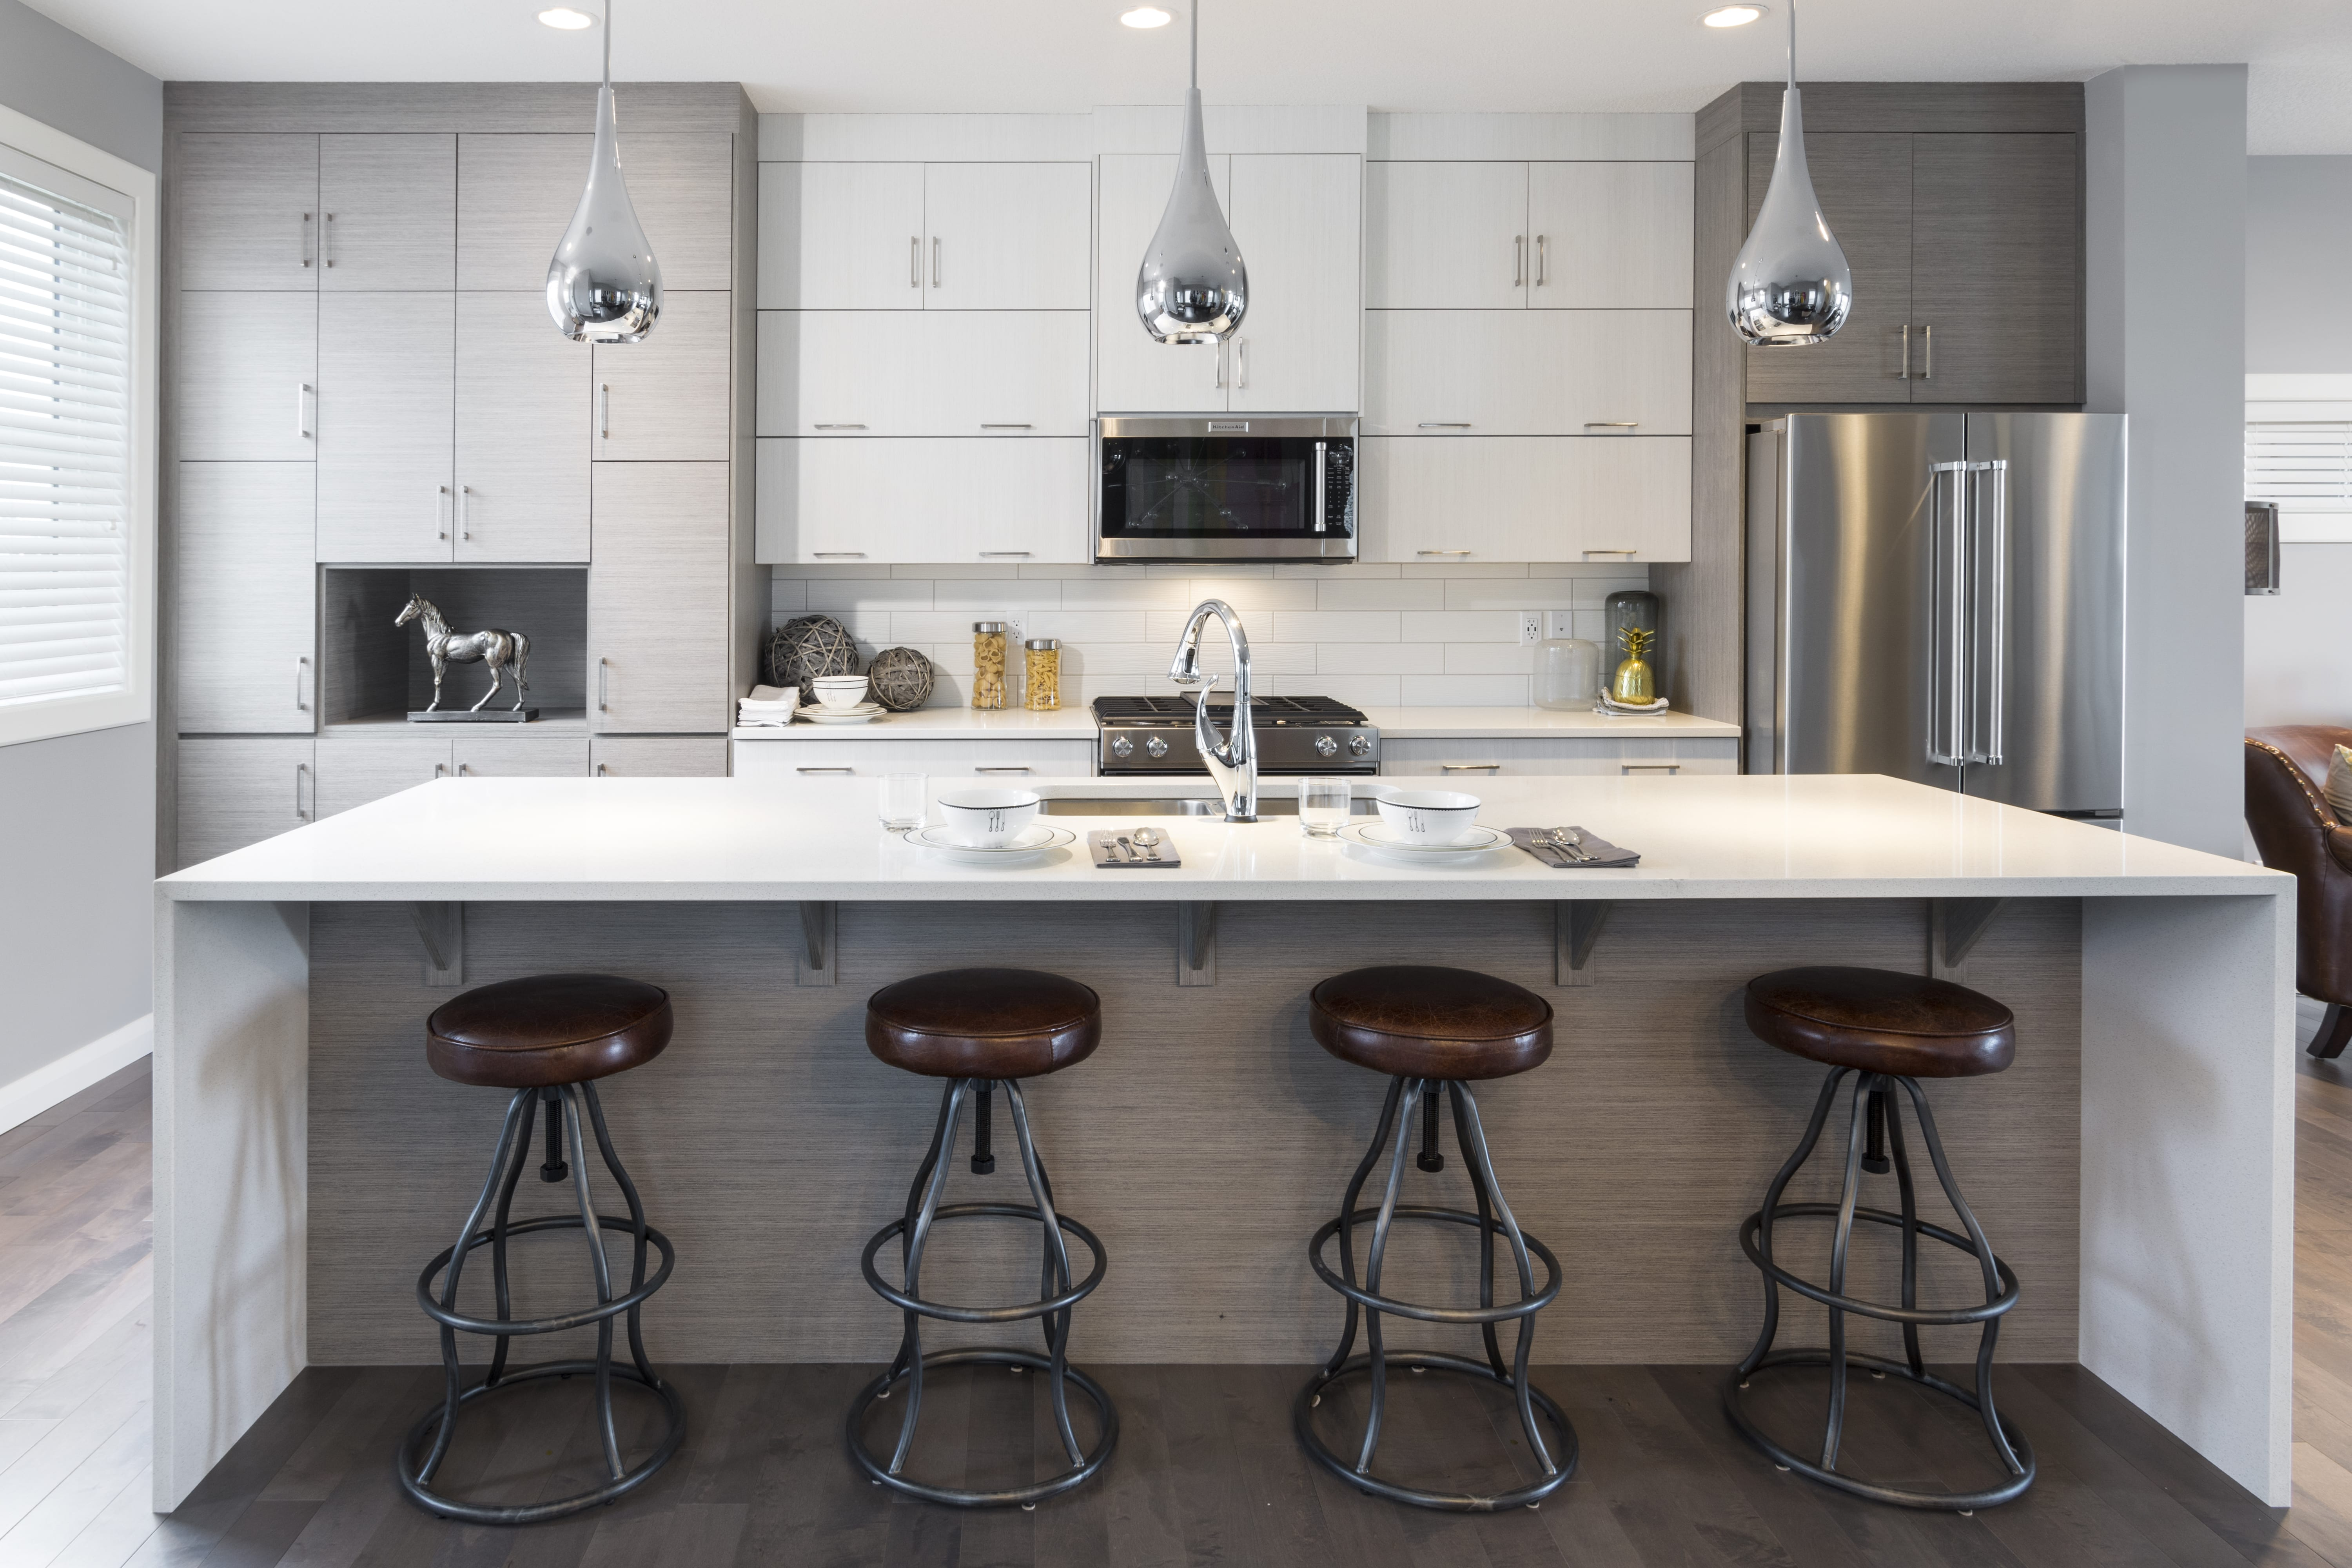 Creating A Kitchen Island: Creating A Functional Kitchen Island